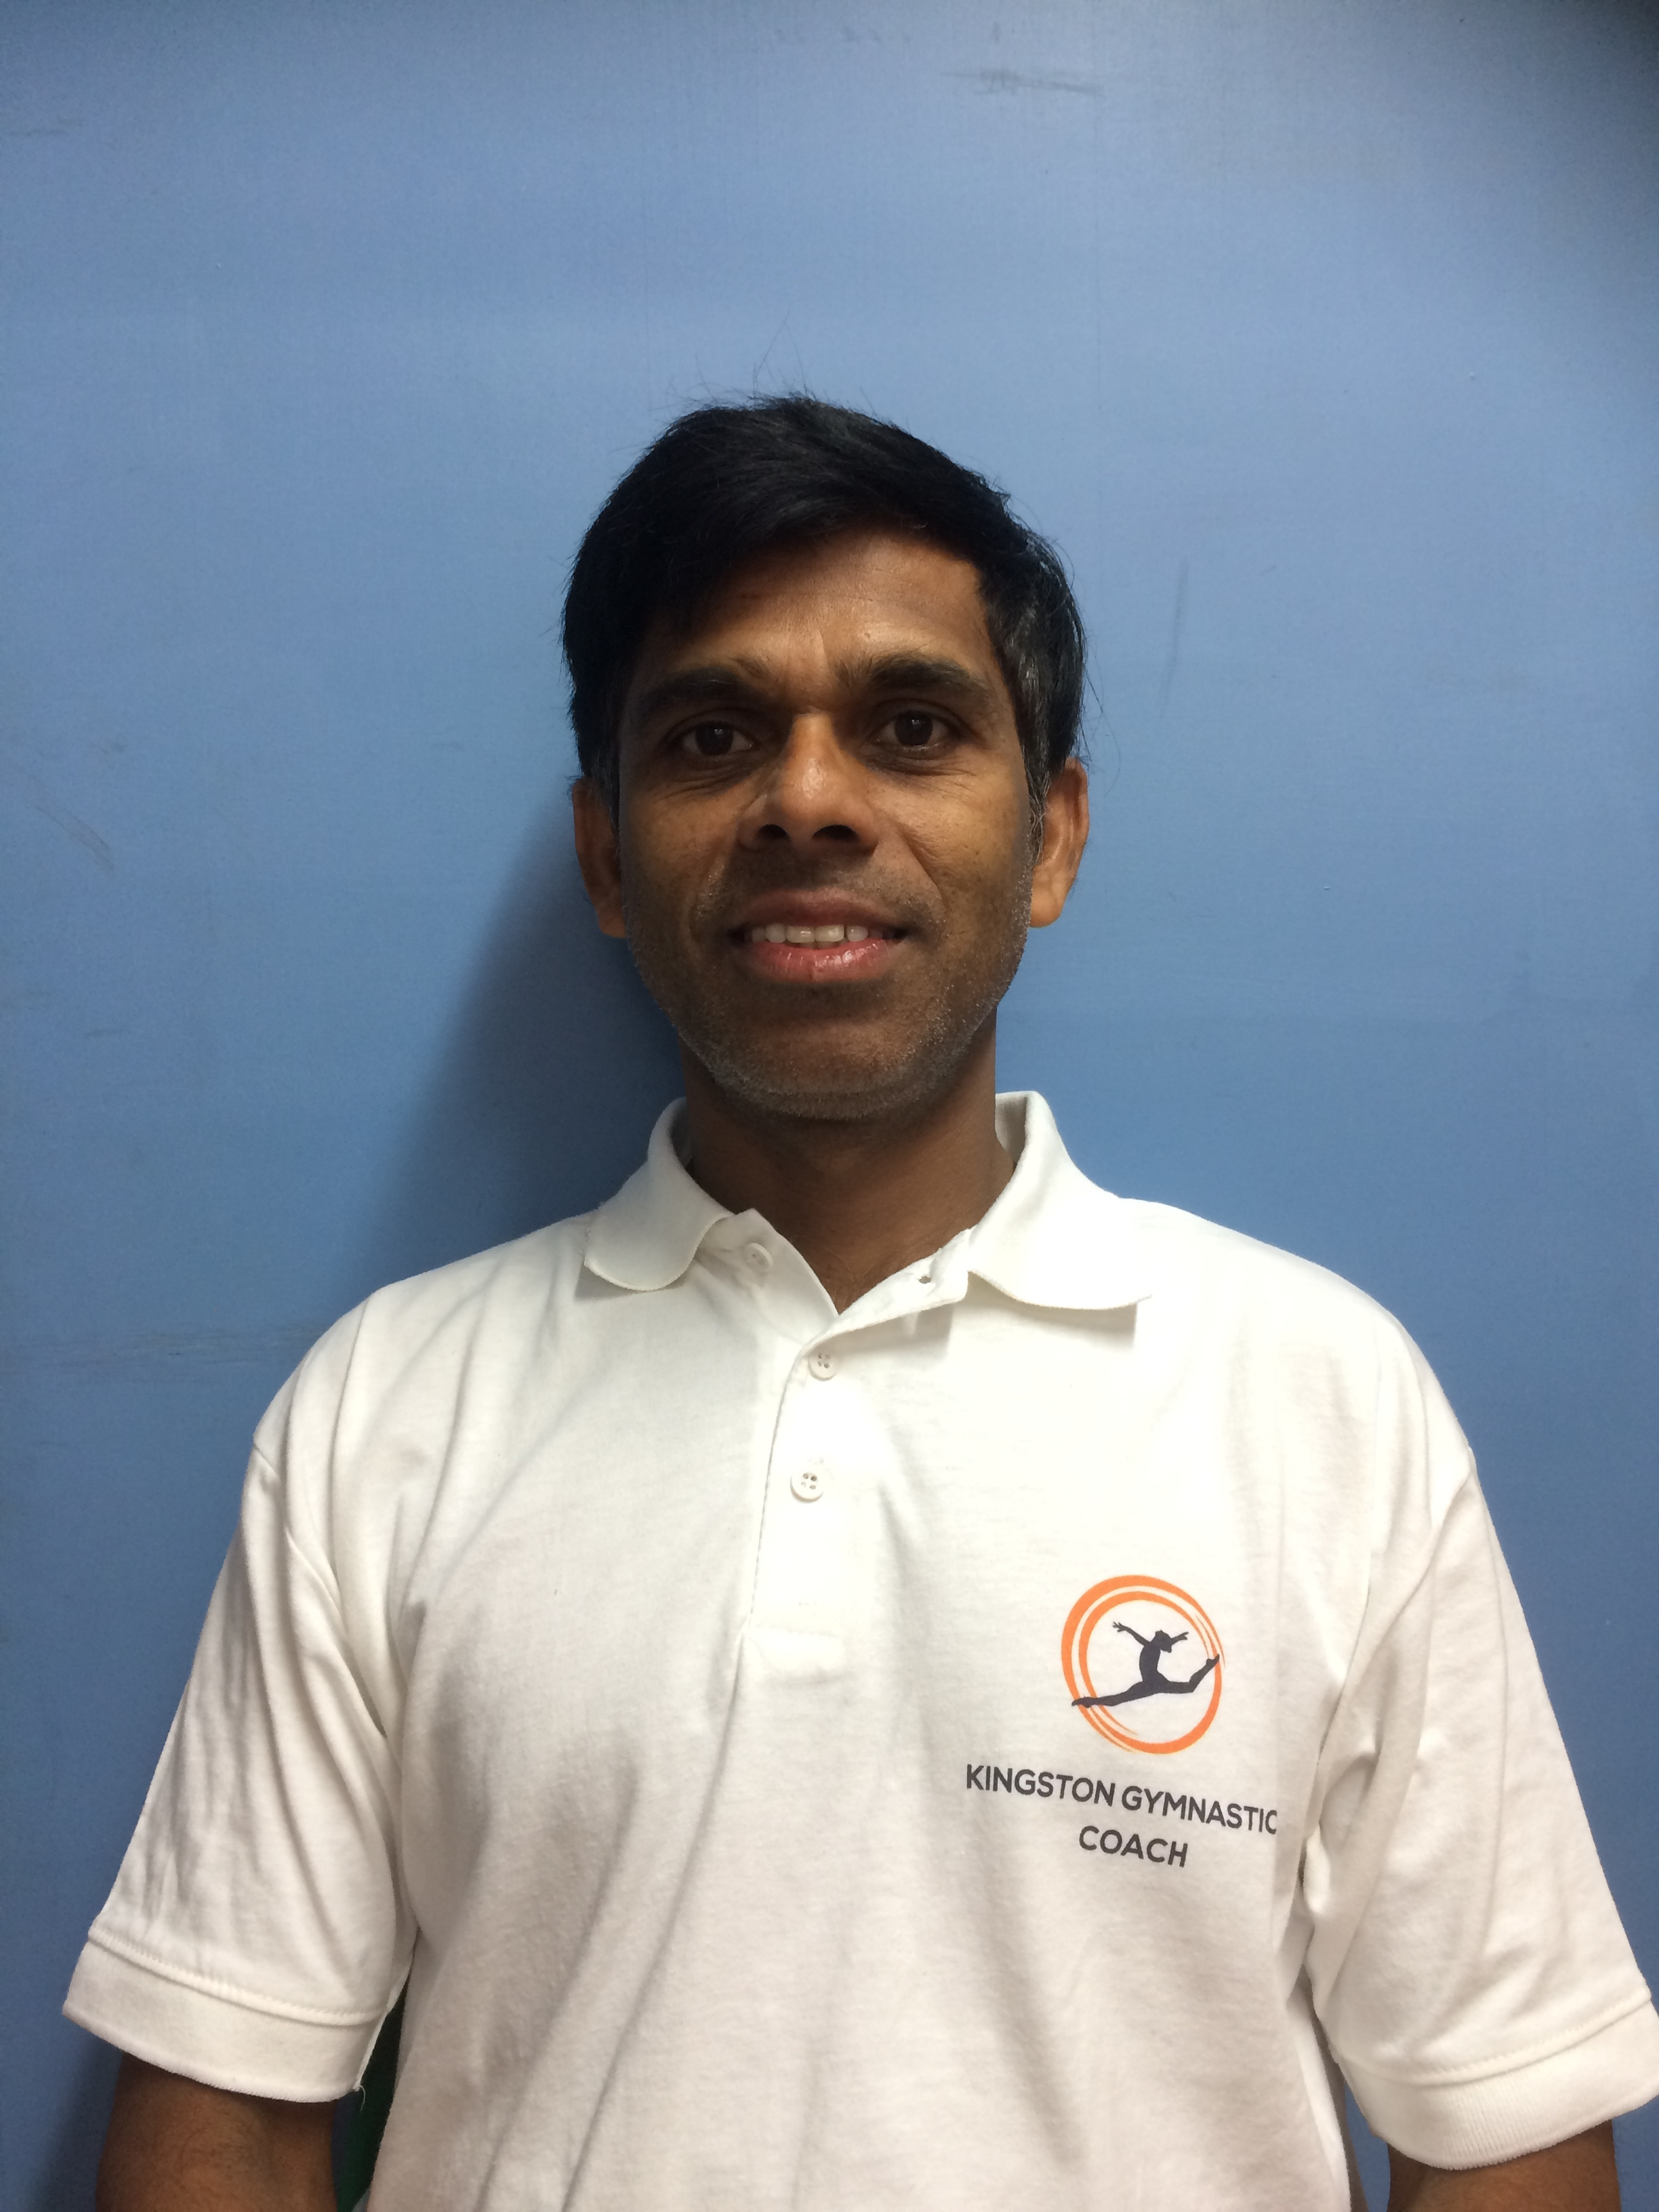 Raj - CLUB Coach - Qualifications: Qualified Gymnastics Club Coach, Qualified Men's and Women's Artistic Judge, Child Protection and Safeguarding course, DBS Checked.